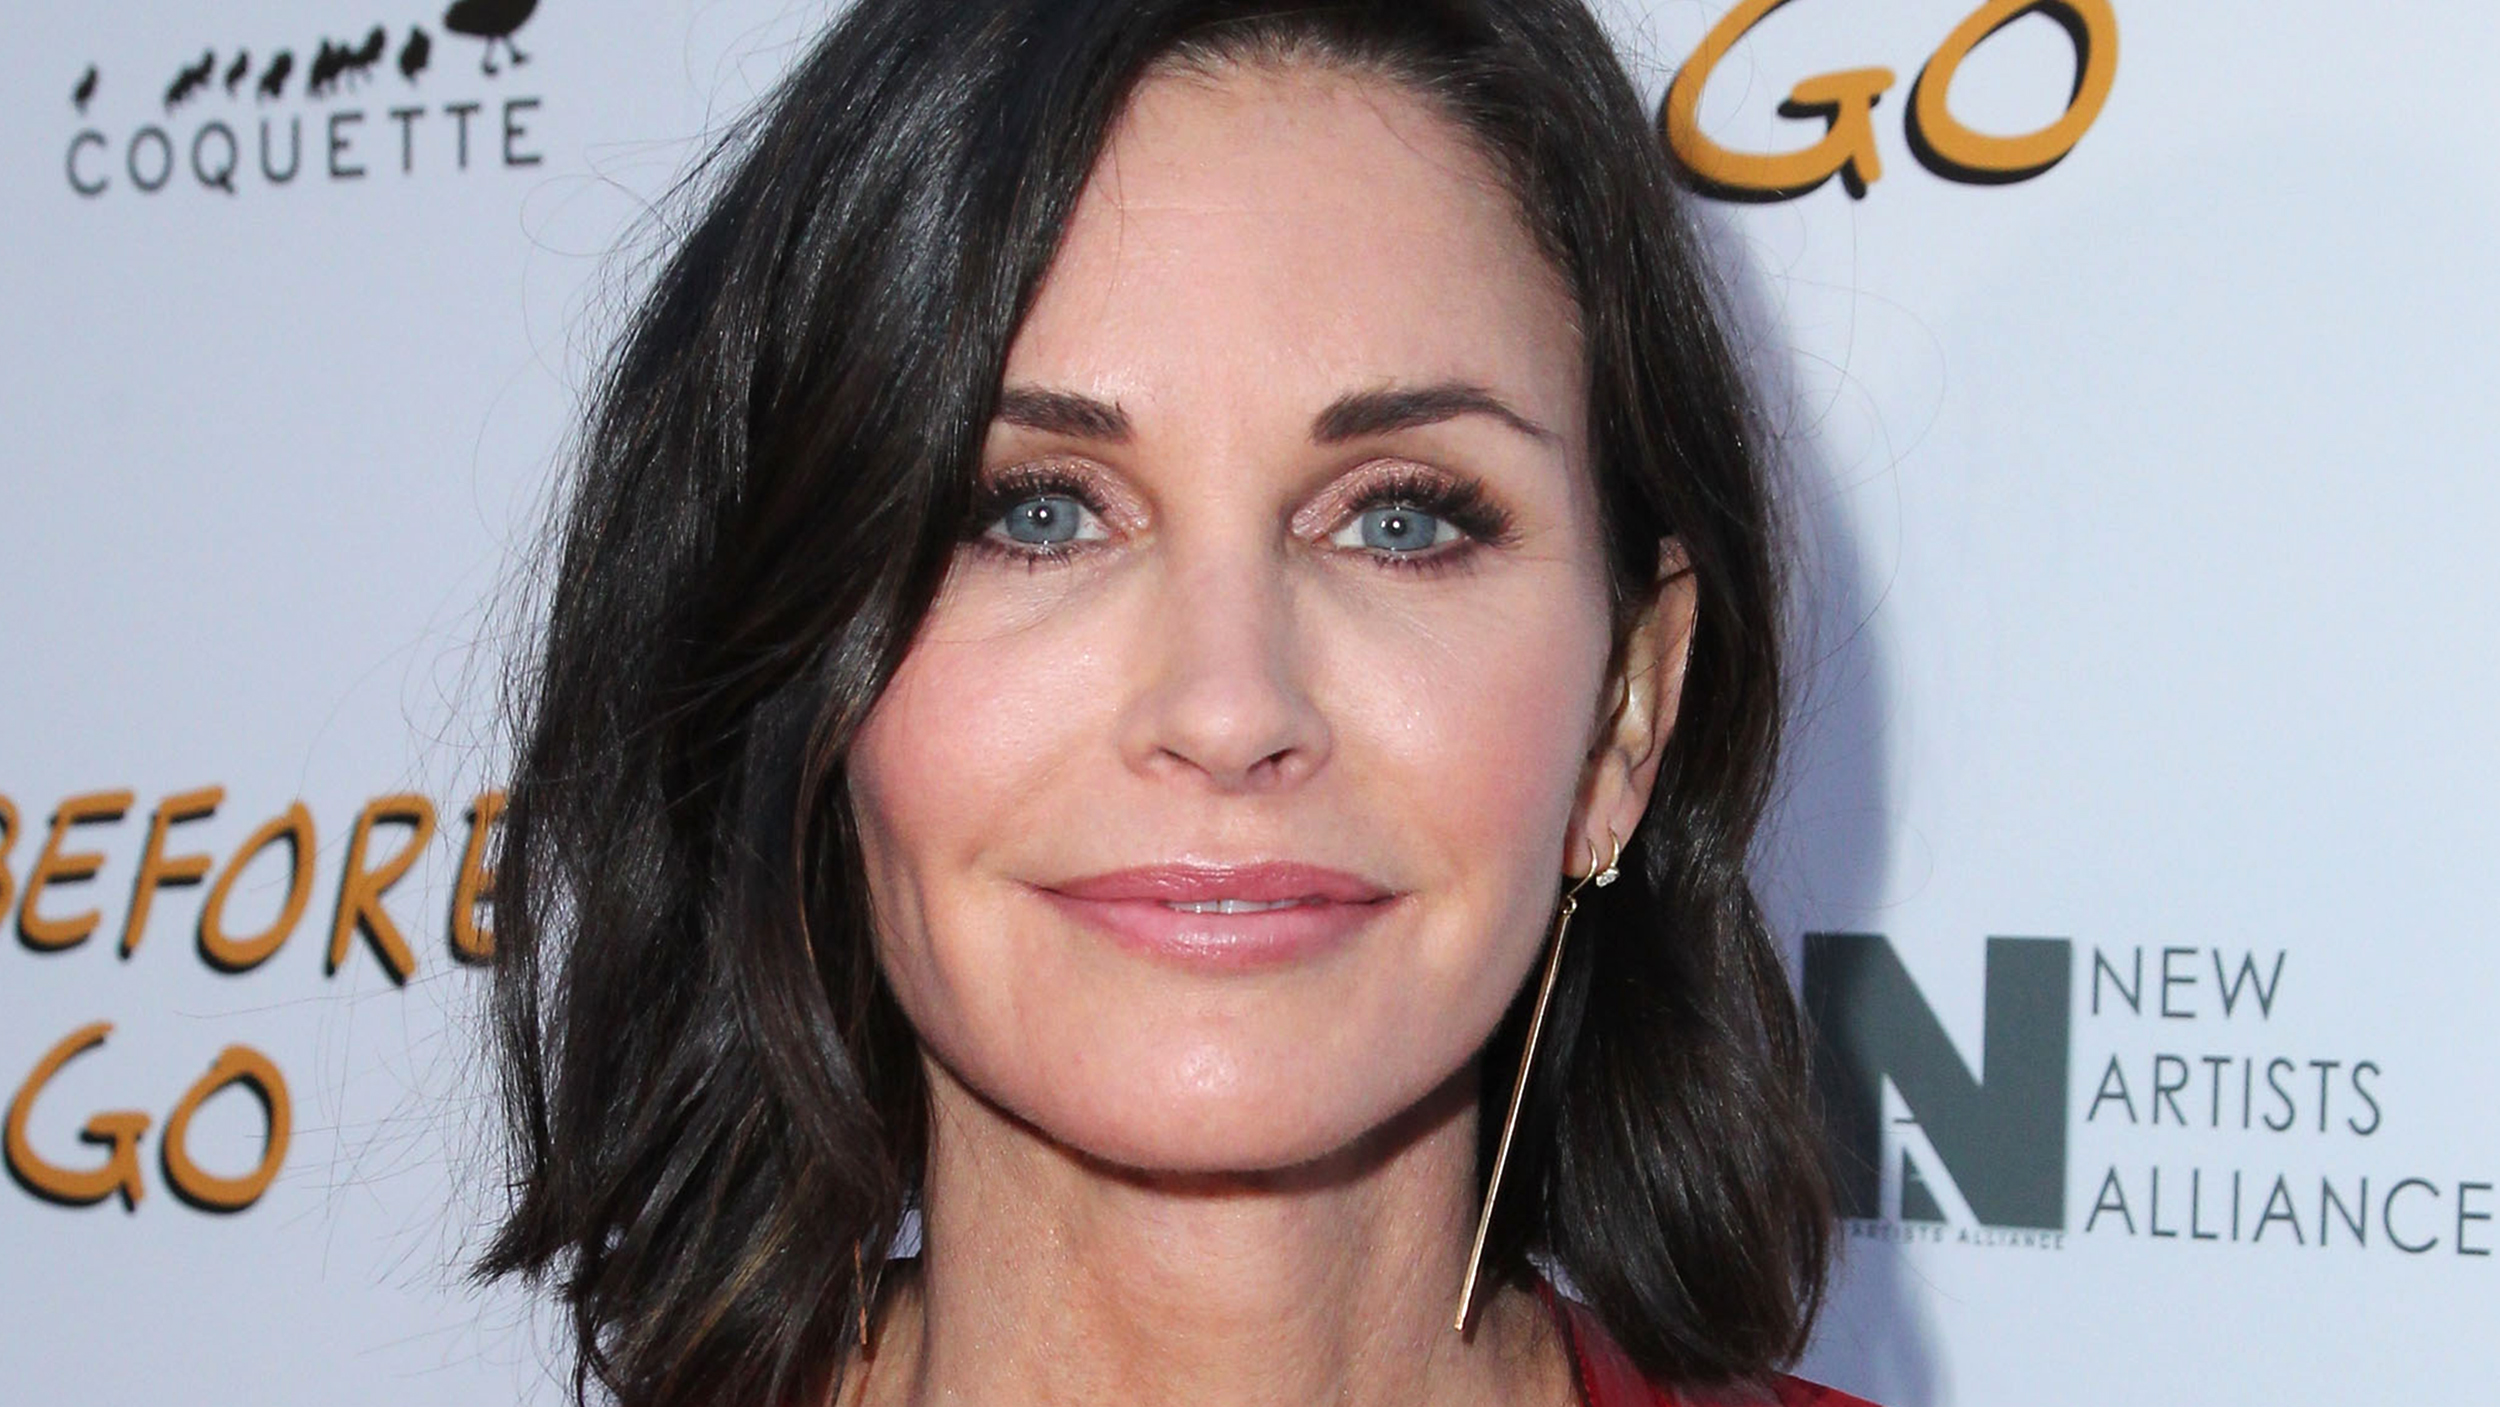 Hacked Courteney Cox nudes (37 photo), Sexy, Cleavage, Feet, butt 2006